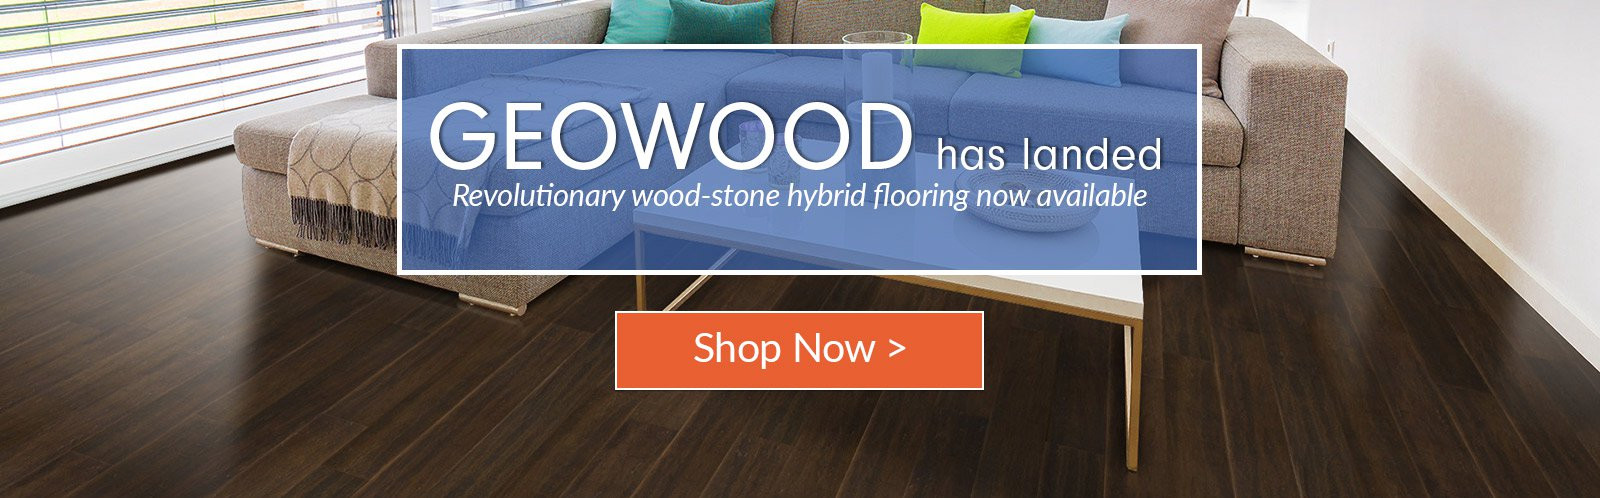 hardwood flooring stores reno nv of green building construction materials and home decor cali bamboo with regard to geowood launch homepage slider